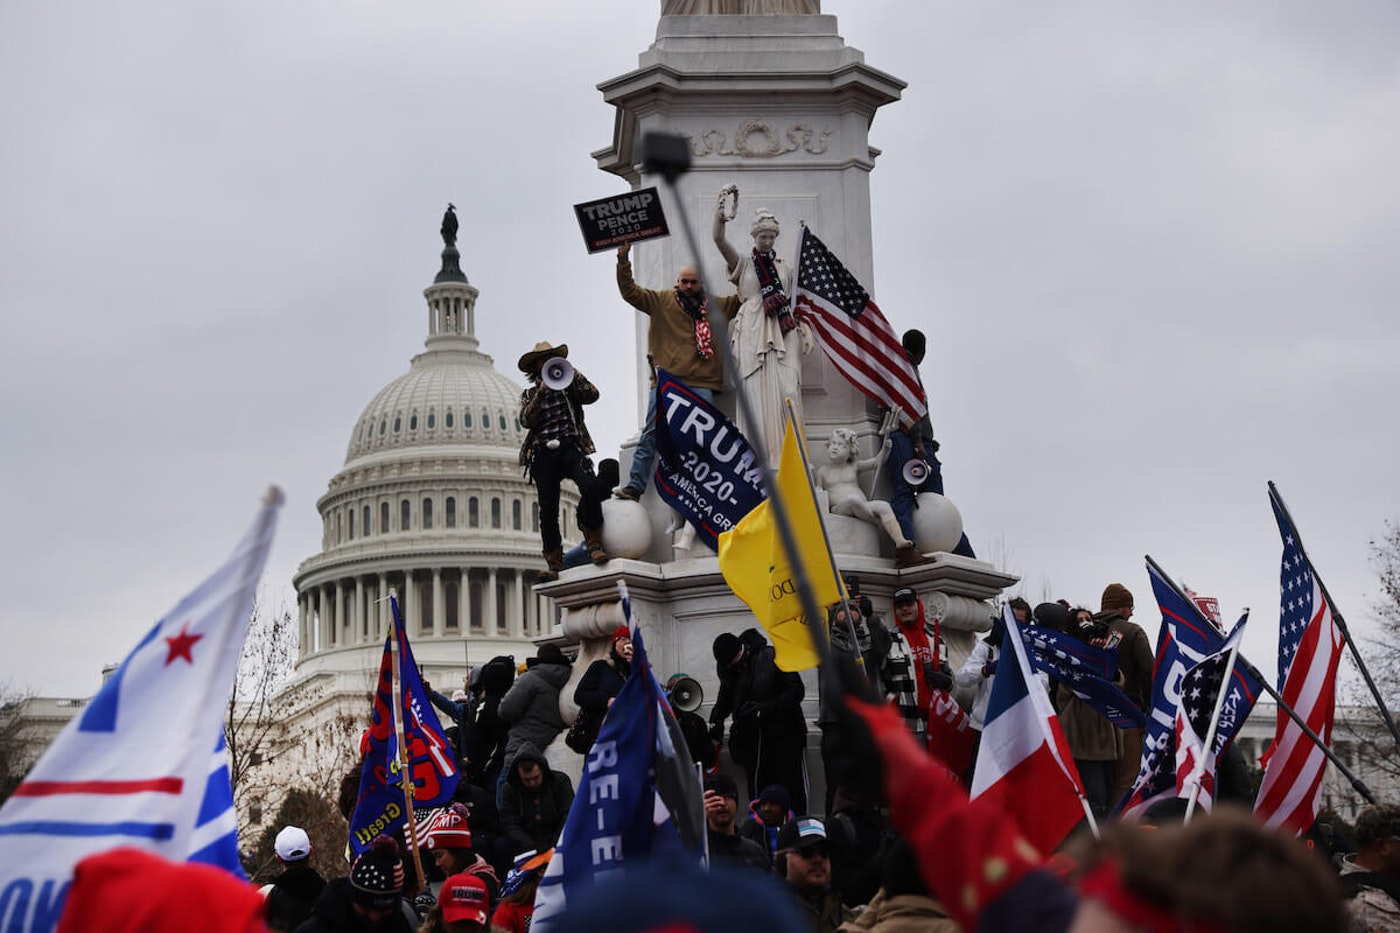 Trump supporters gathered in the nation's capital to protest the ratification of President-elect Joe Biden's Electoral College victory over President Donald Trump in the 2020 election. The demonstration turned violent and deadly. (Photo by Spencer Platt/Getty Images)